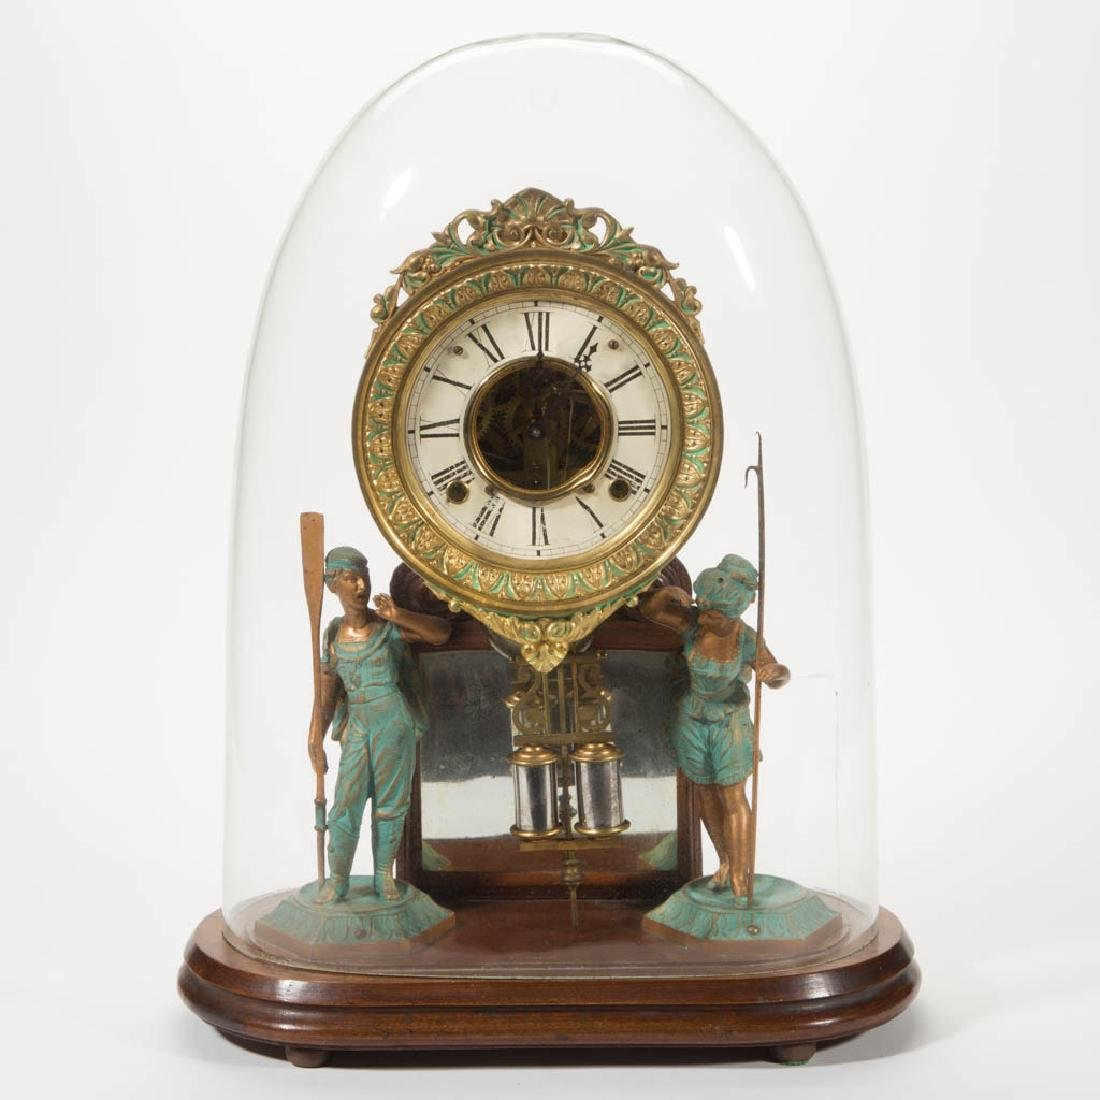 H.J. DAVIES / ANSONIA CRYSTAL PALACE NO. 1 MANTLE CLOCK